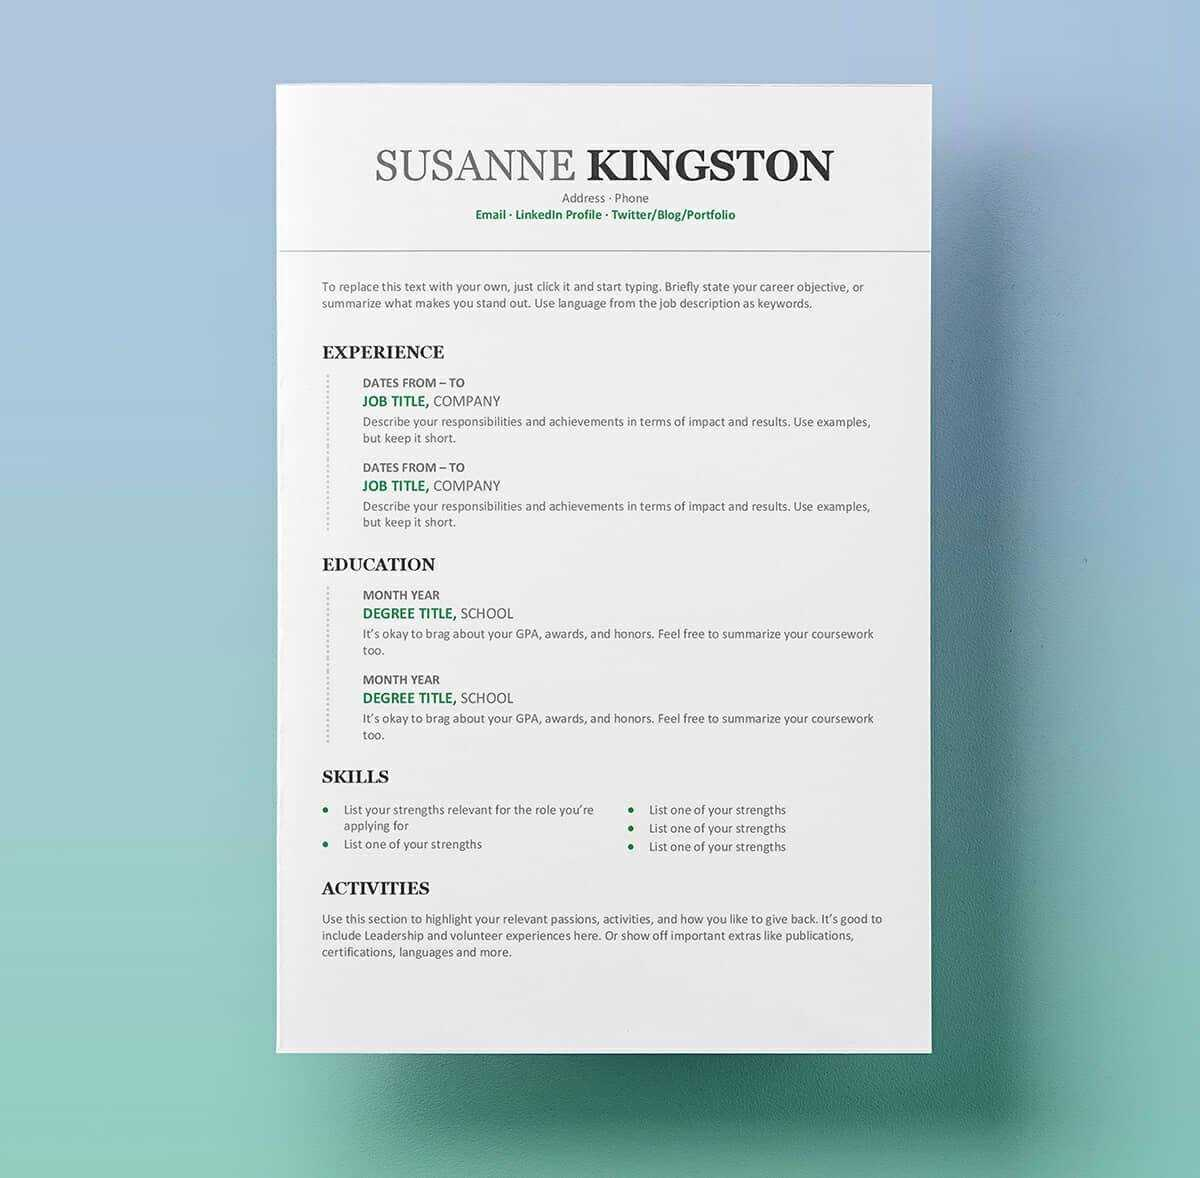 25 Resume Templates For Microsoft Word [Free Download] With Regard To How To Get A Resume Template On Word